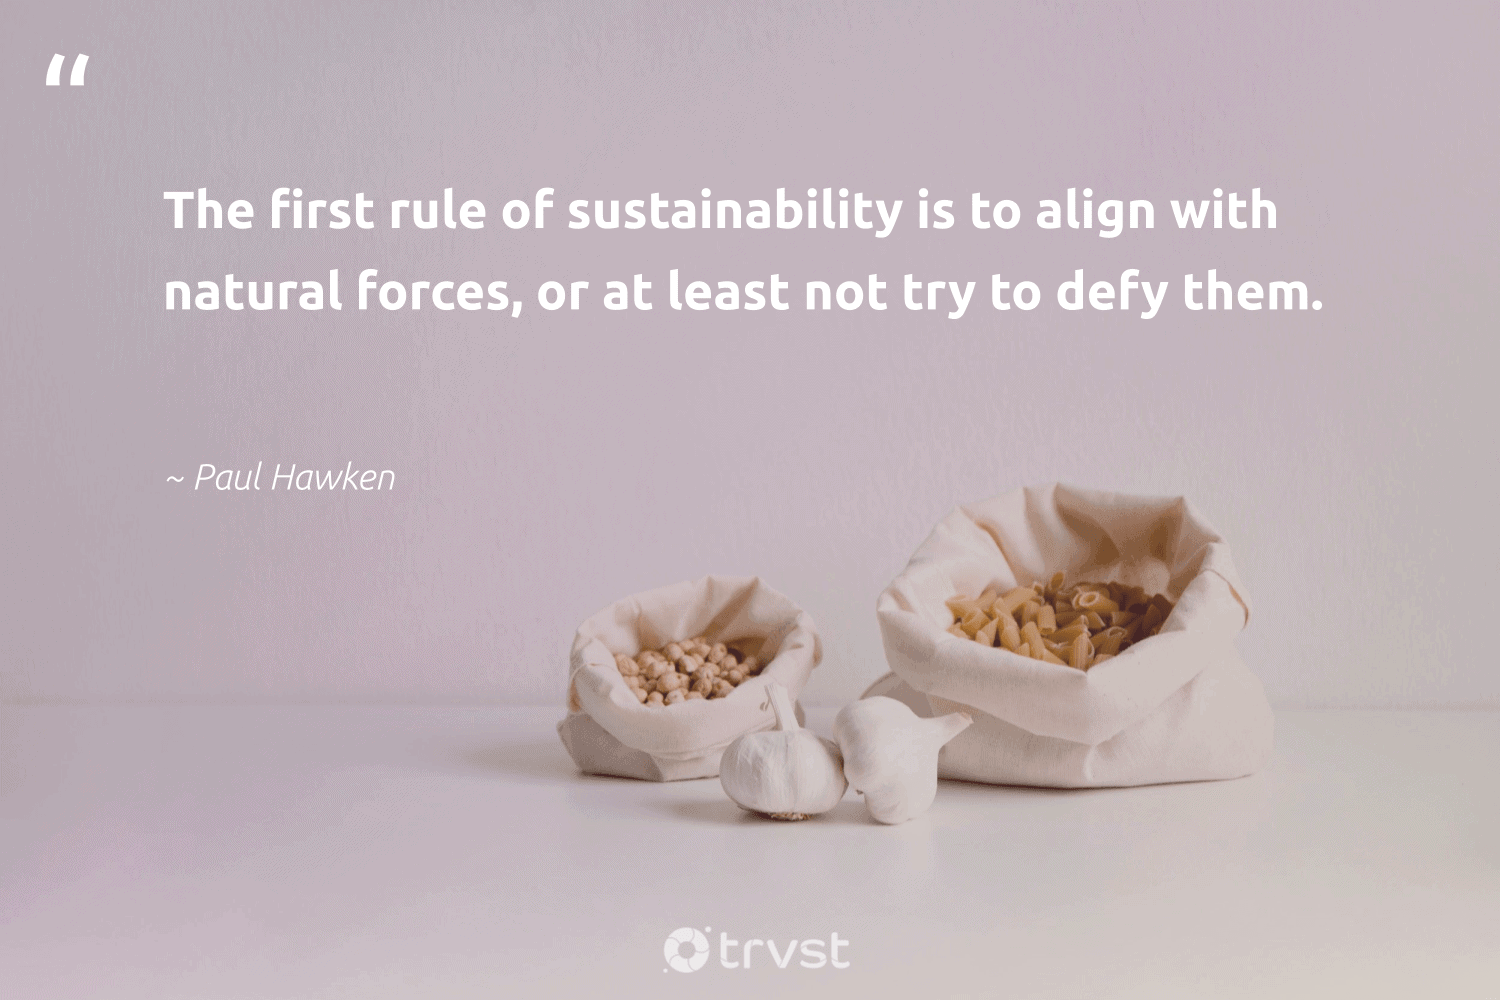 """""""The first rule of sustainability is to align with natural forces, or at least not try to defy them.""""  - Paul Hawken #trvst #quotes #sustainability #natural #sustainableliving #greenliving #gogreen #impact #sustainable #green #bethechange #takeaction"""